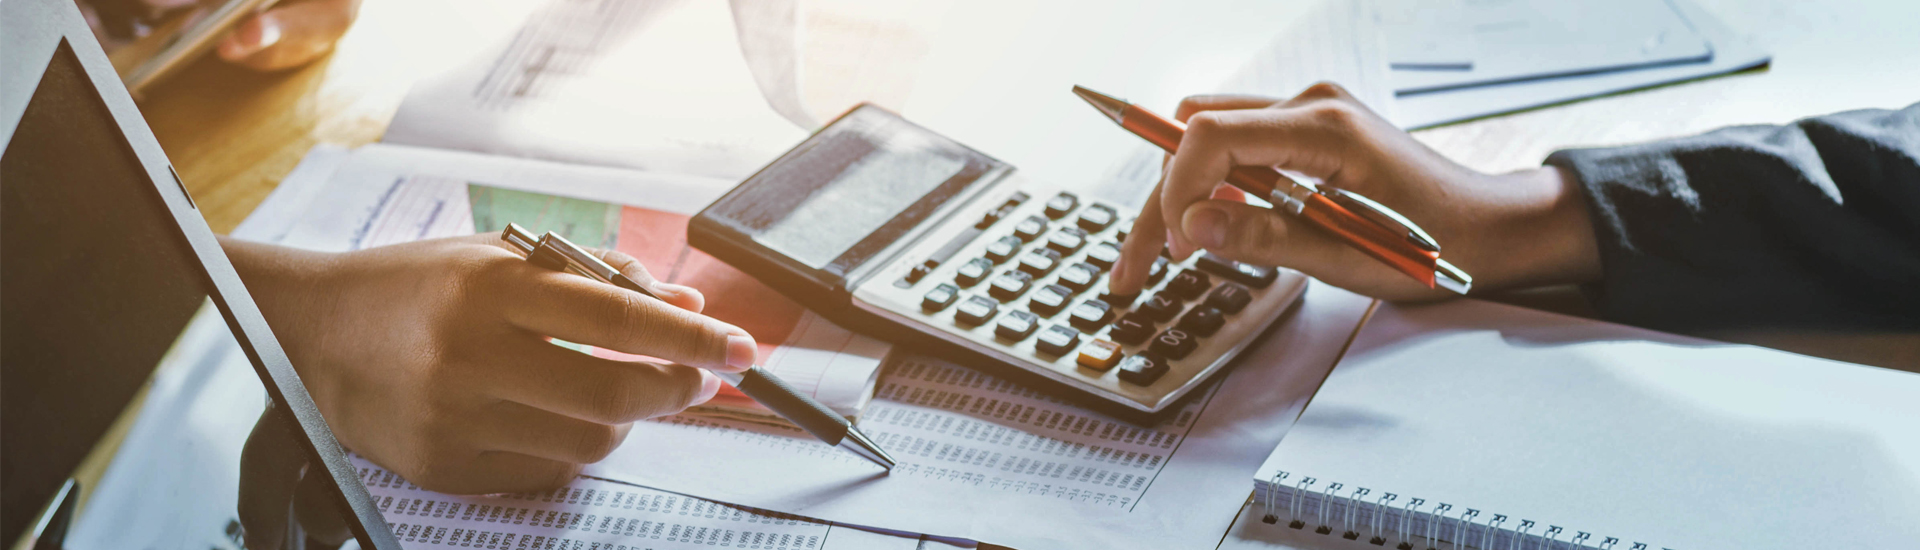 Financing, financial and tendering advices